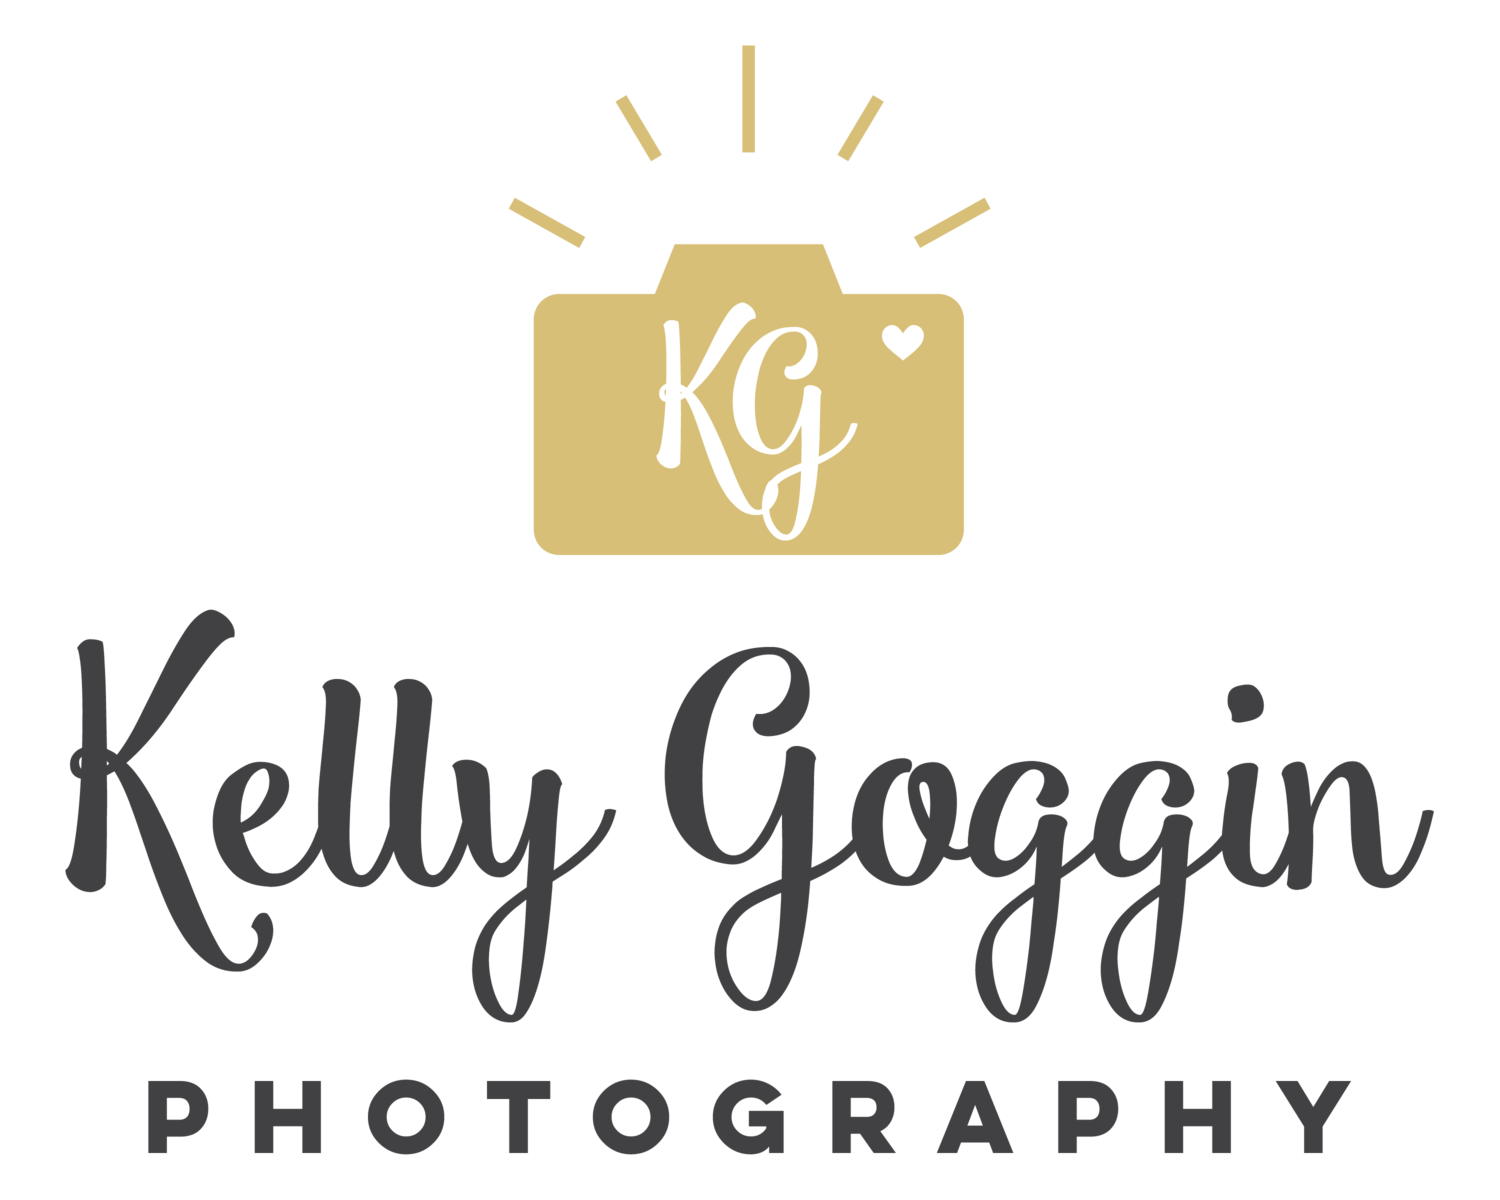 Kelly Goggin Photography